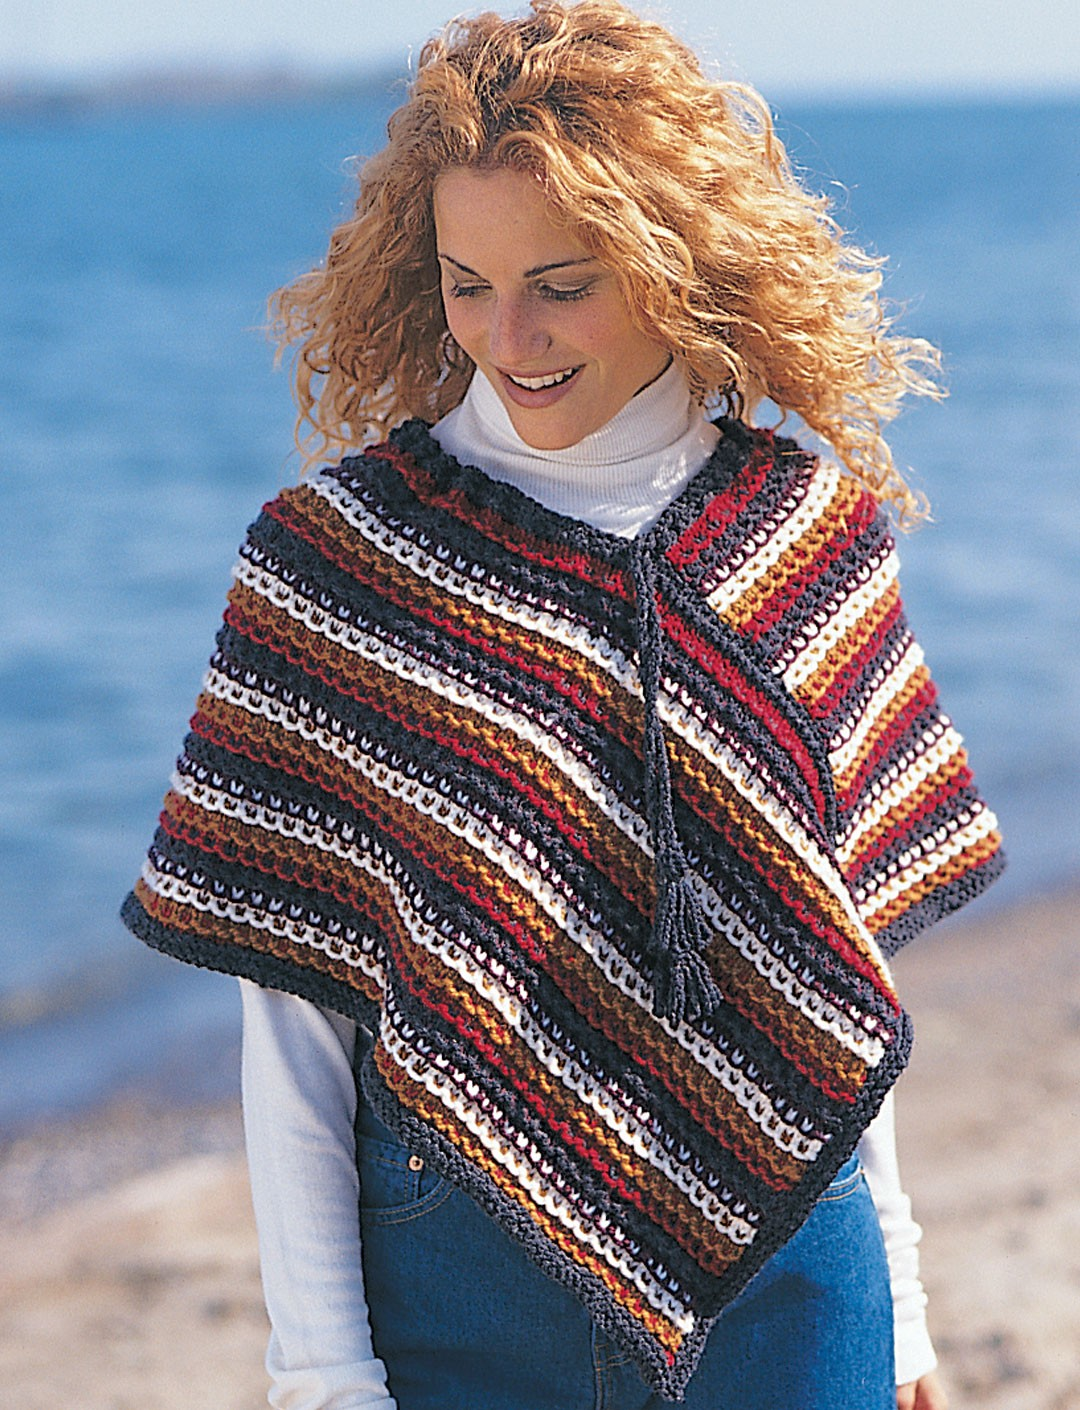 Free Knitting Pattern For A Poncho : Easy Rustic Stripes Poncho - Patterns Yarnspirations